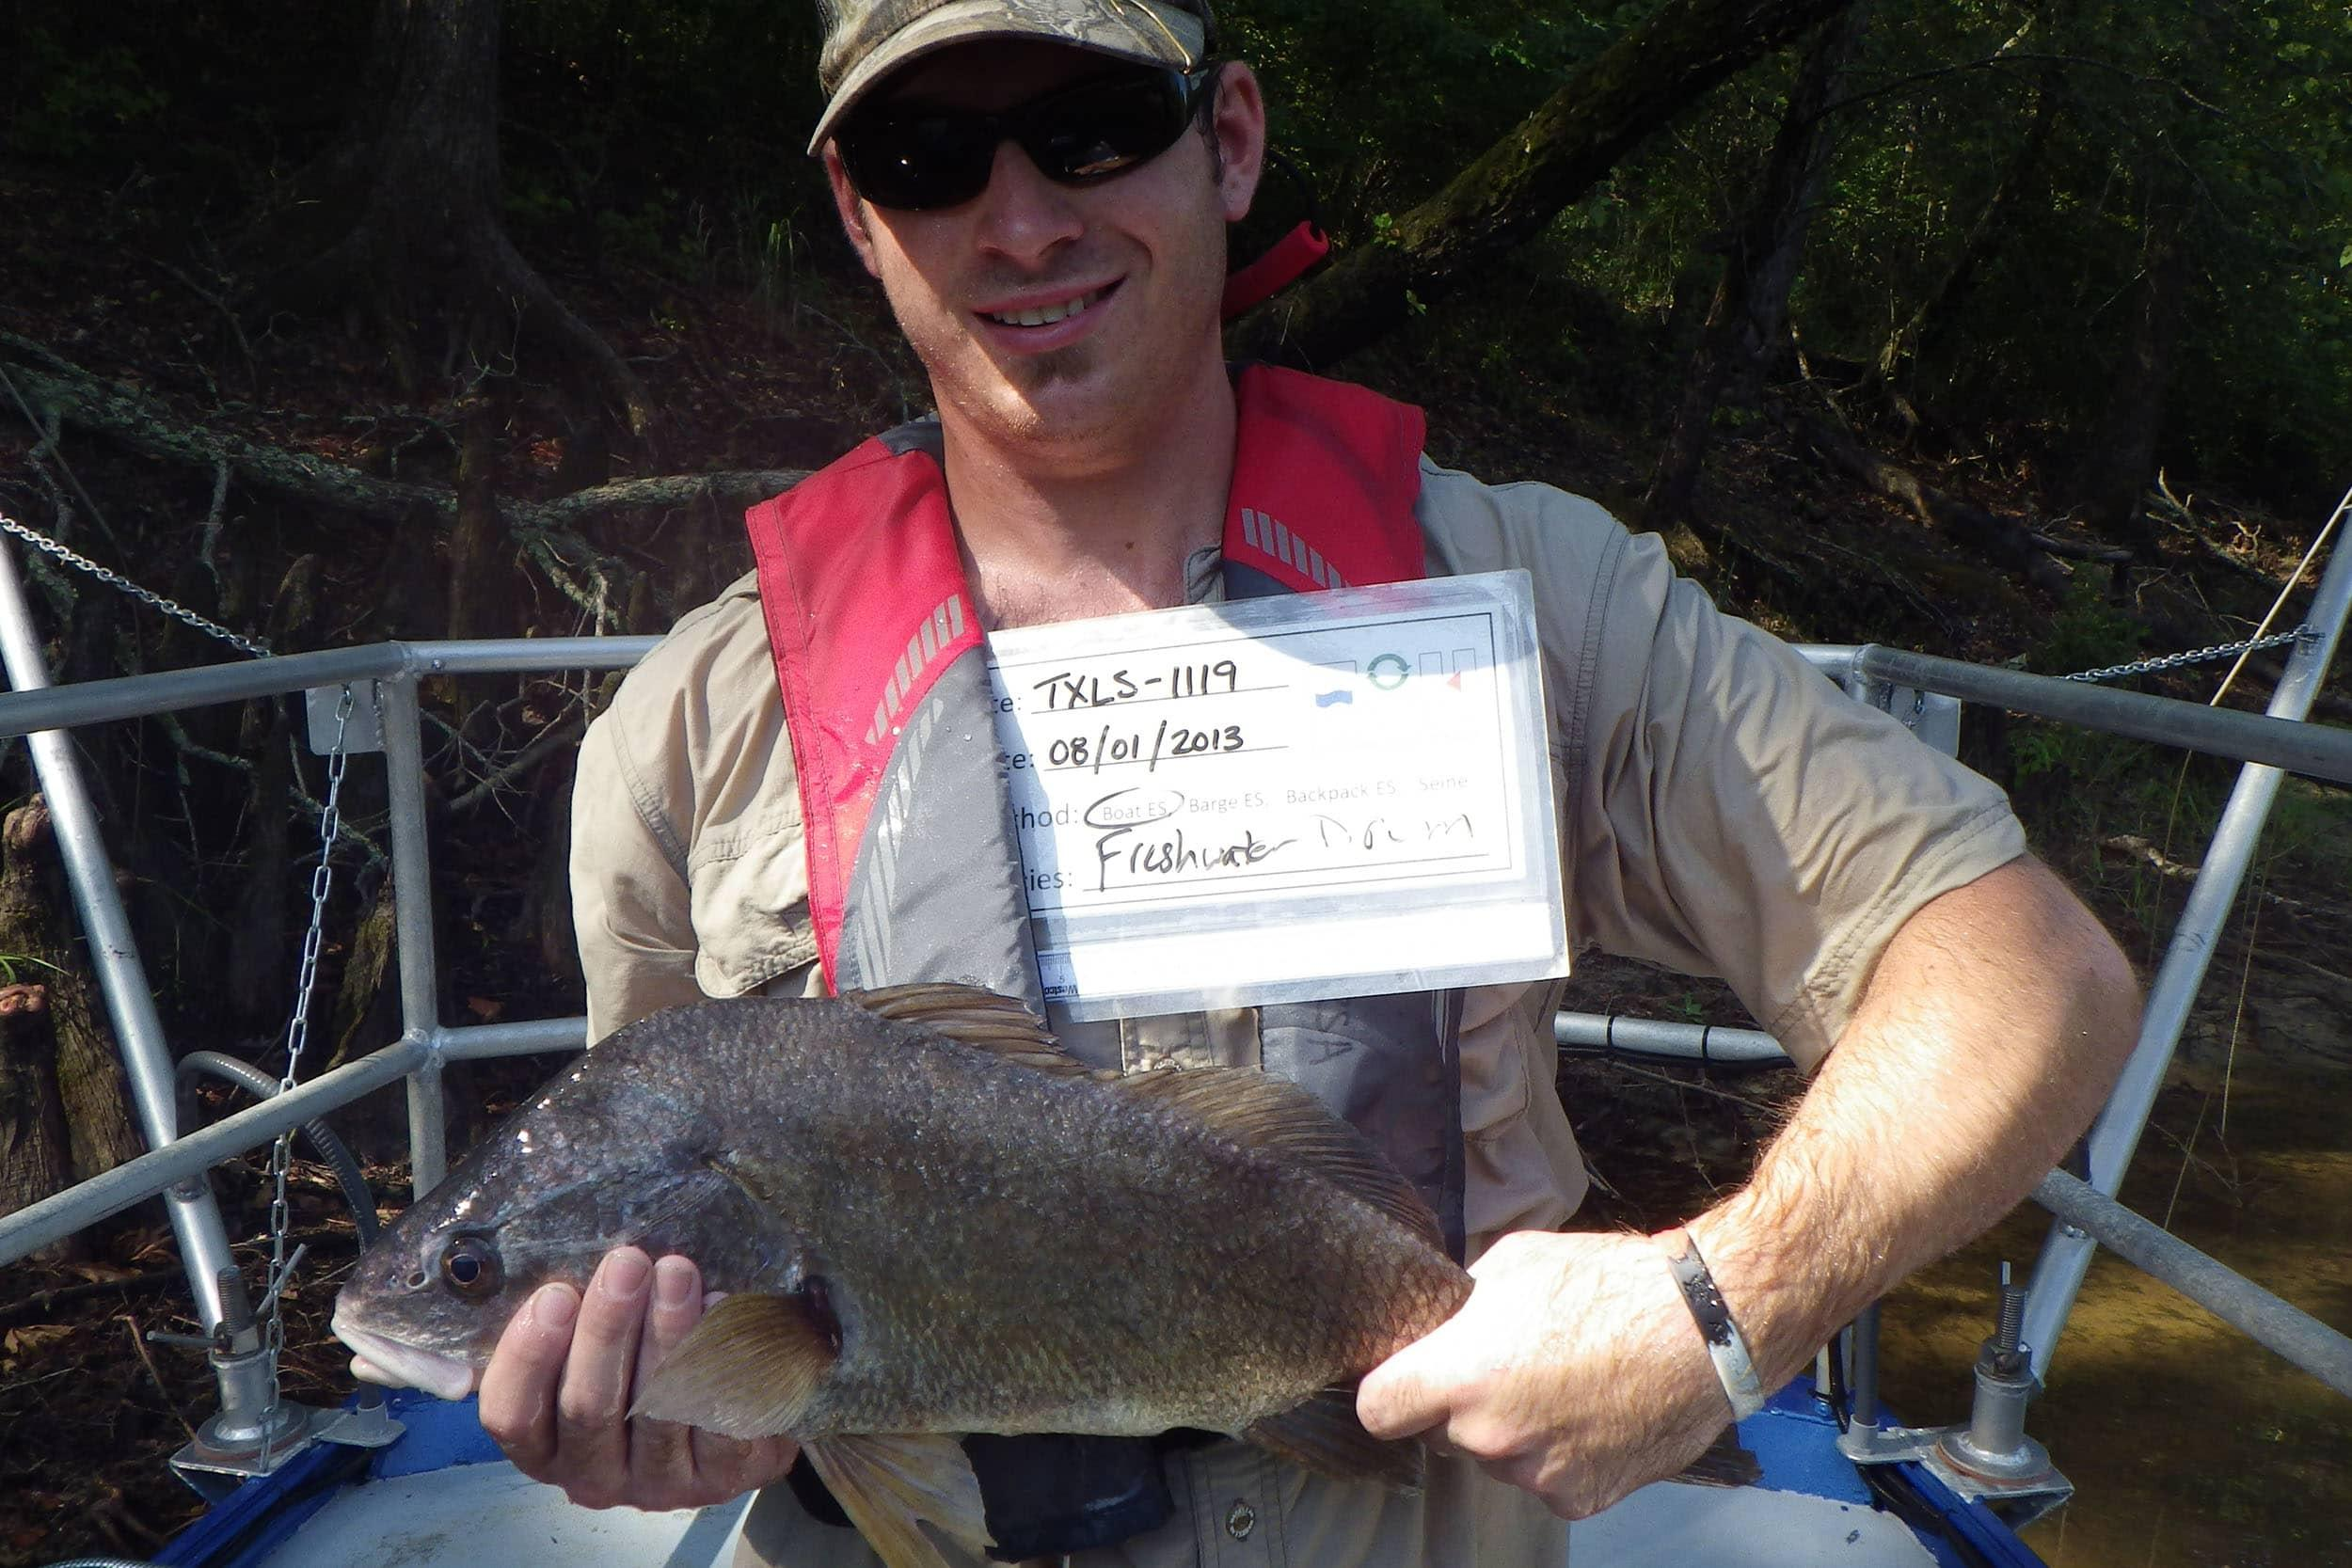 Michael Lane, research assistant, holding a freshwater drum, collects fish community data for the NRSA project